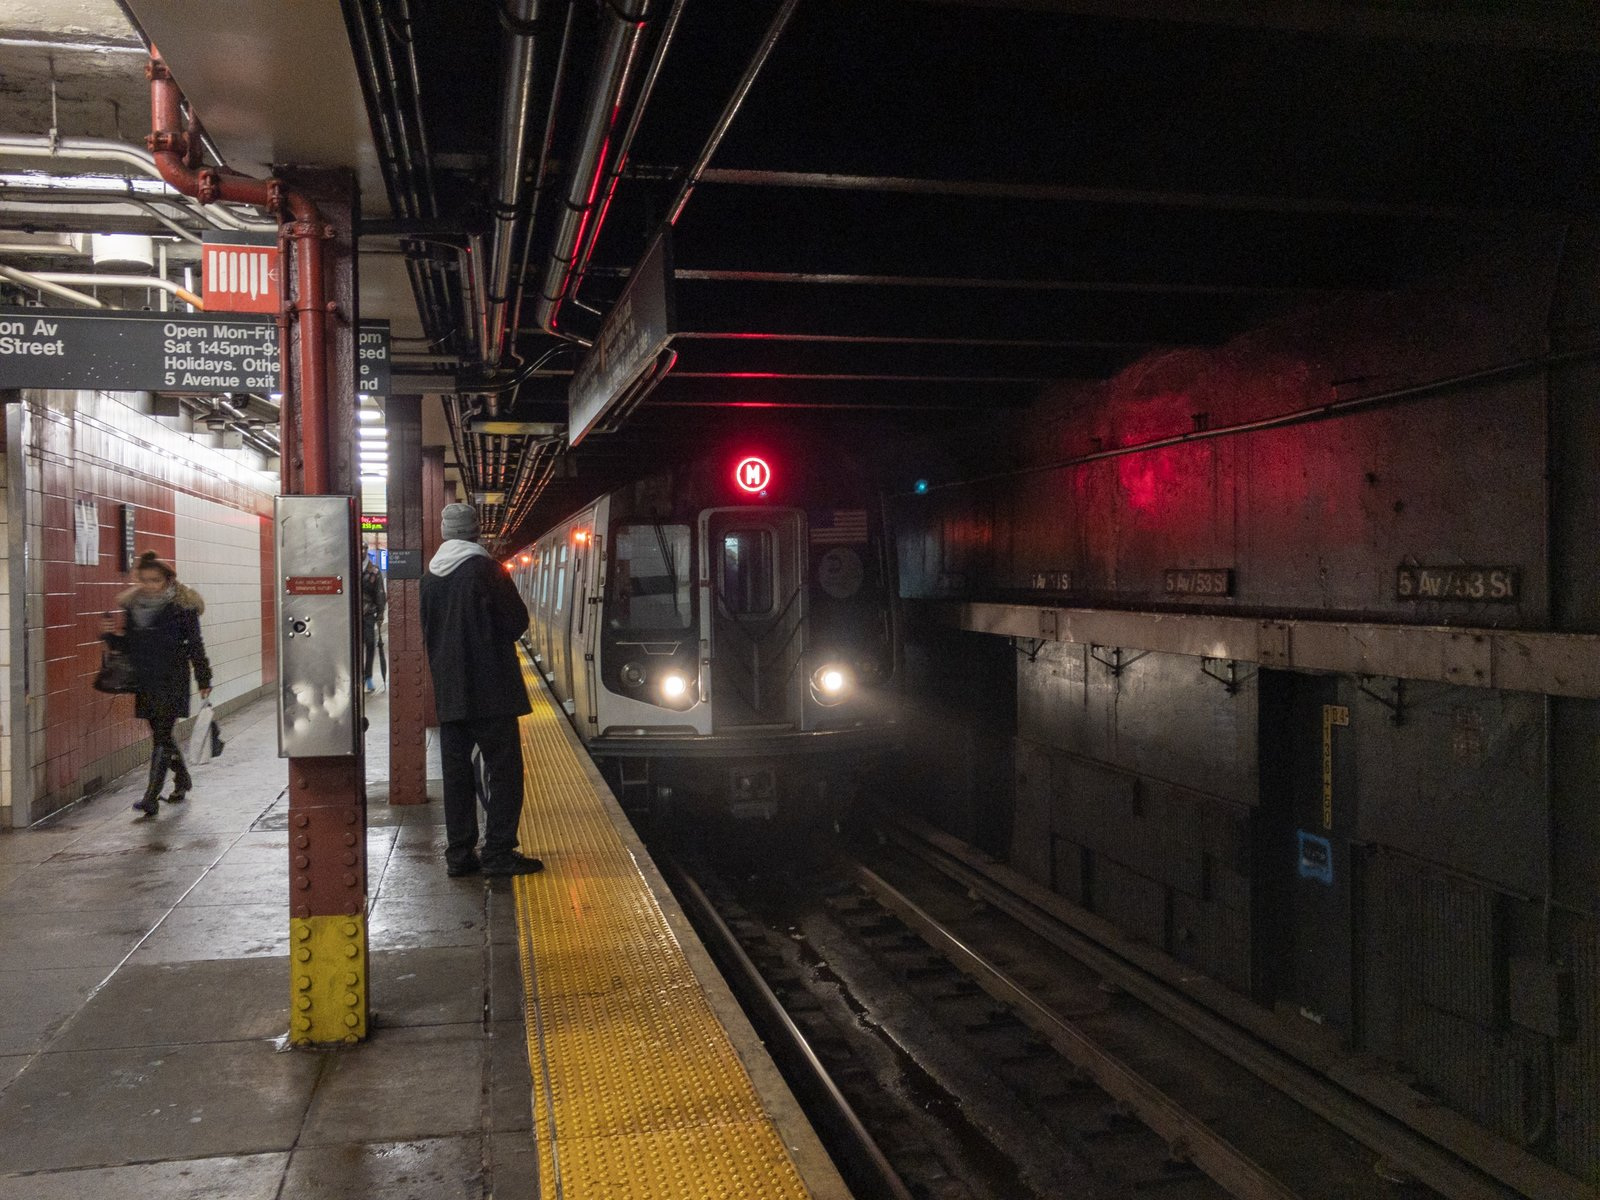 M Train at 5 Av-53 St